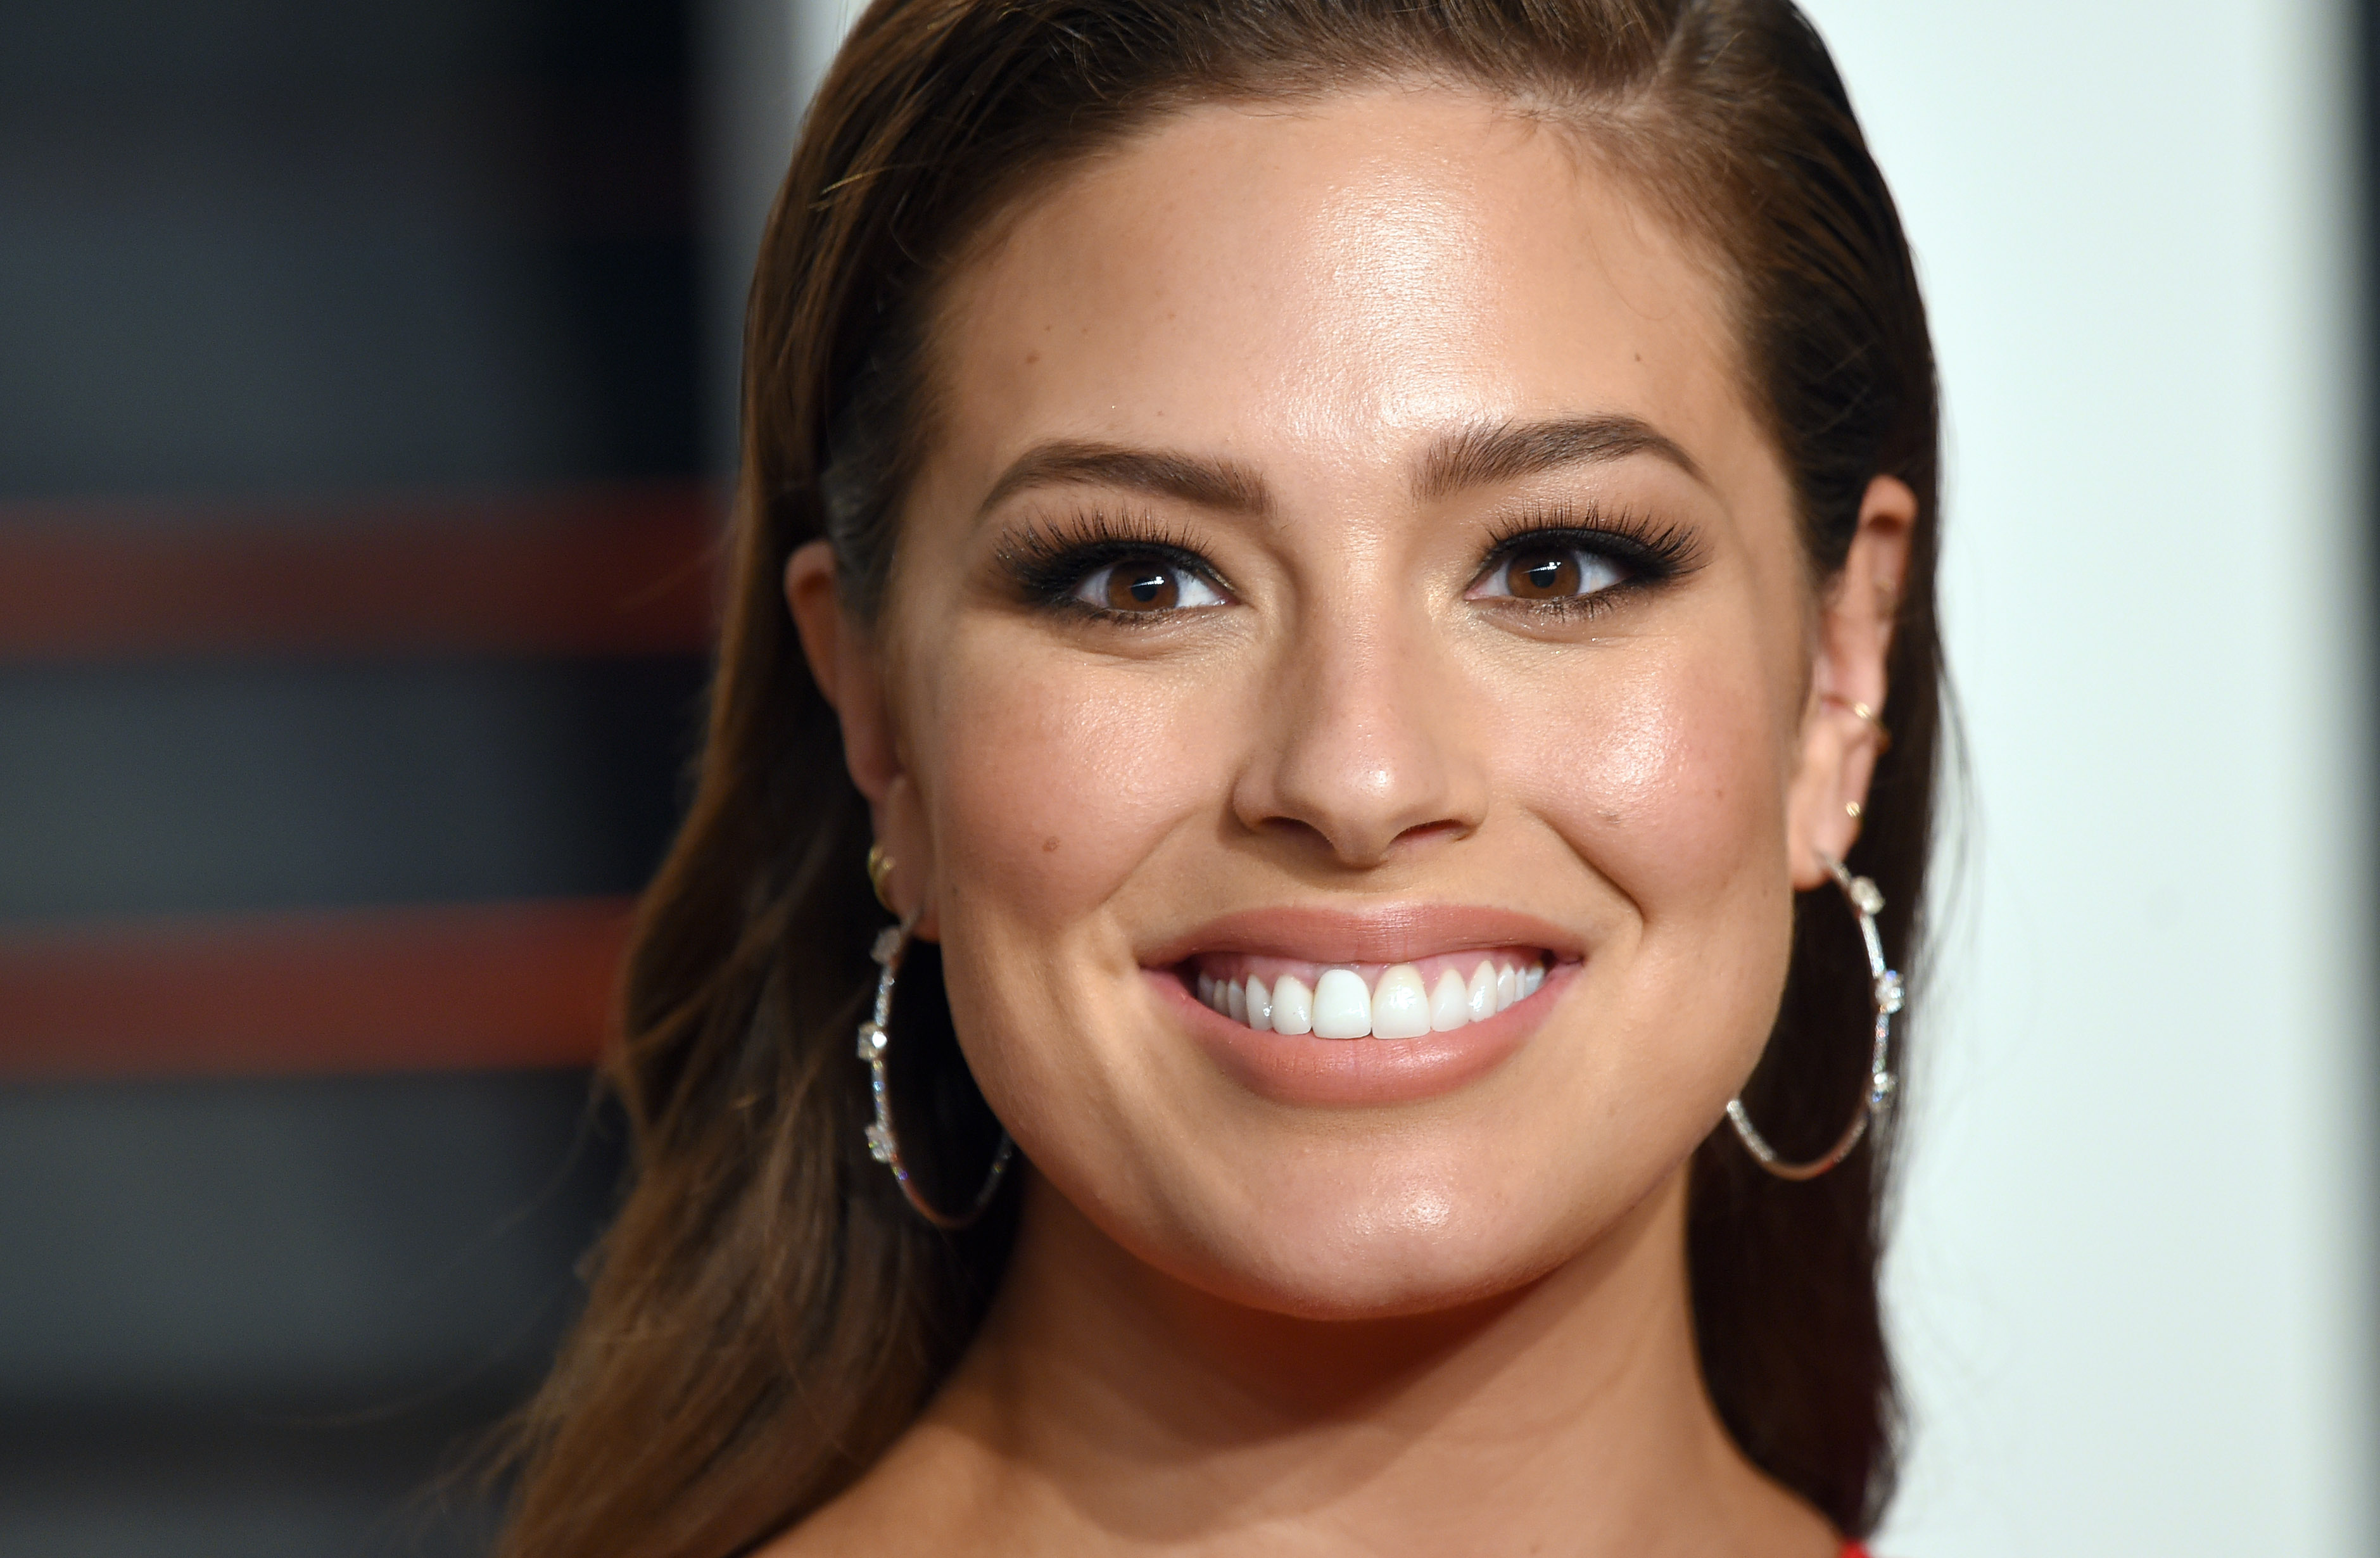 Ashley Graham attends the 2016 Vanity Fair Oscar Party Hosted By Graydon Carter at Wallis Annenberg Center for the Performing Arts on February 28, 2016 in Beverly Hills, California.